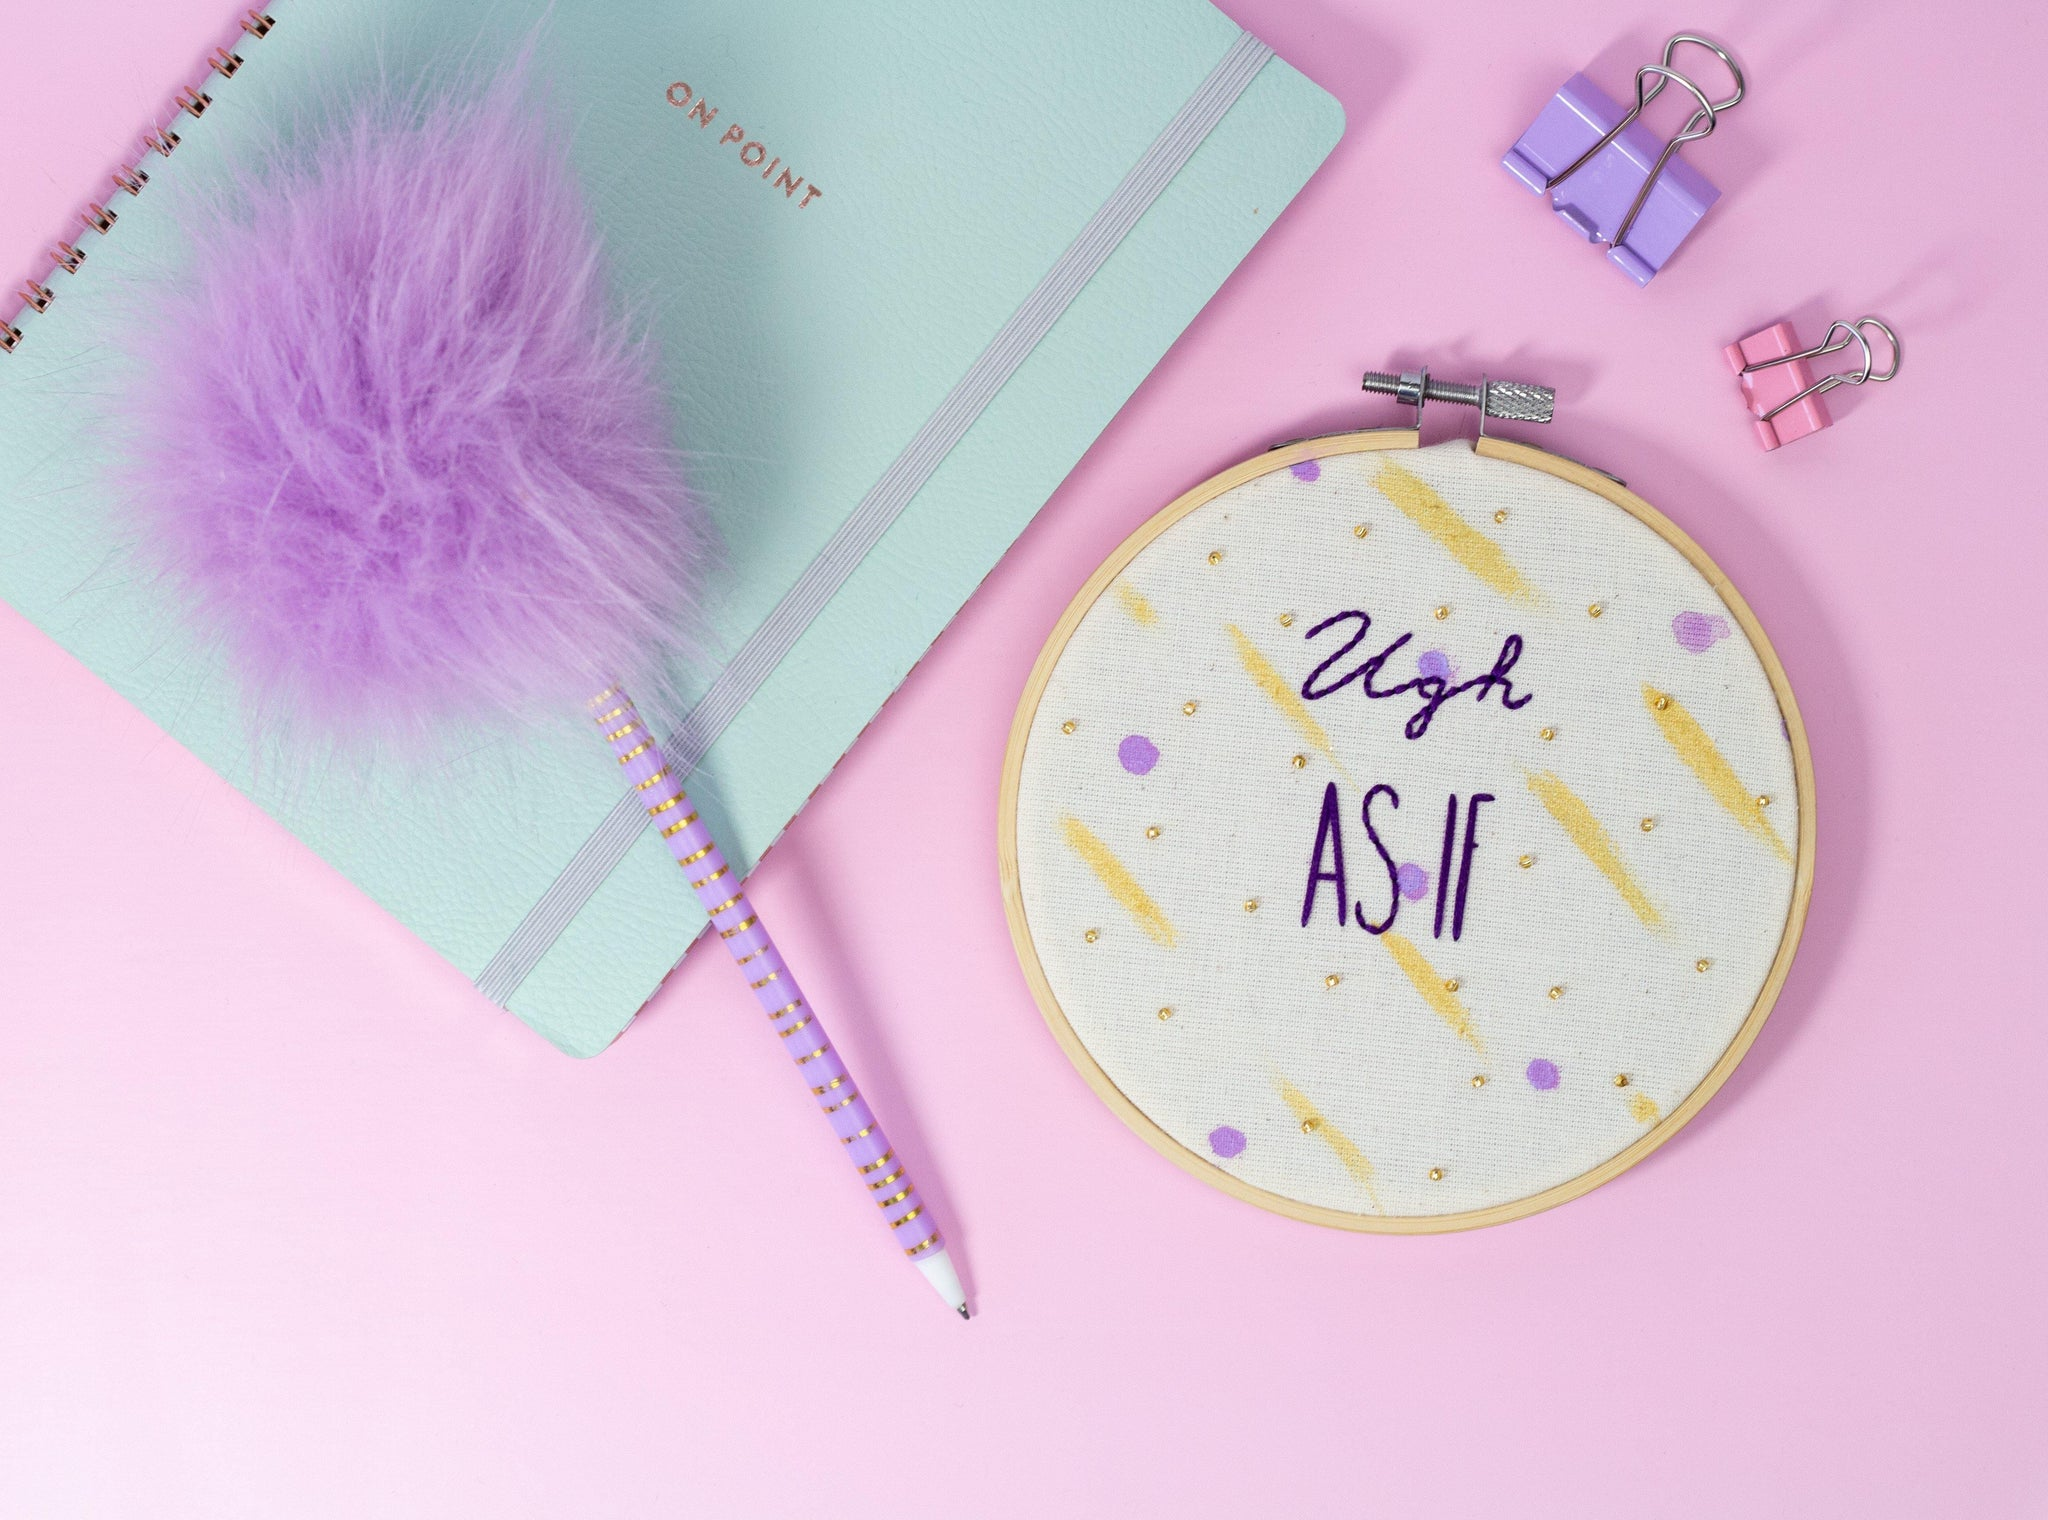 Ugh As If - Cher Clueless Embroidery Hoop | The Femme Bohemian - The Femme Bohemian